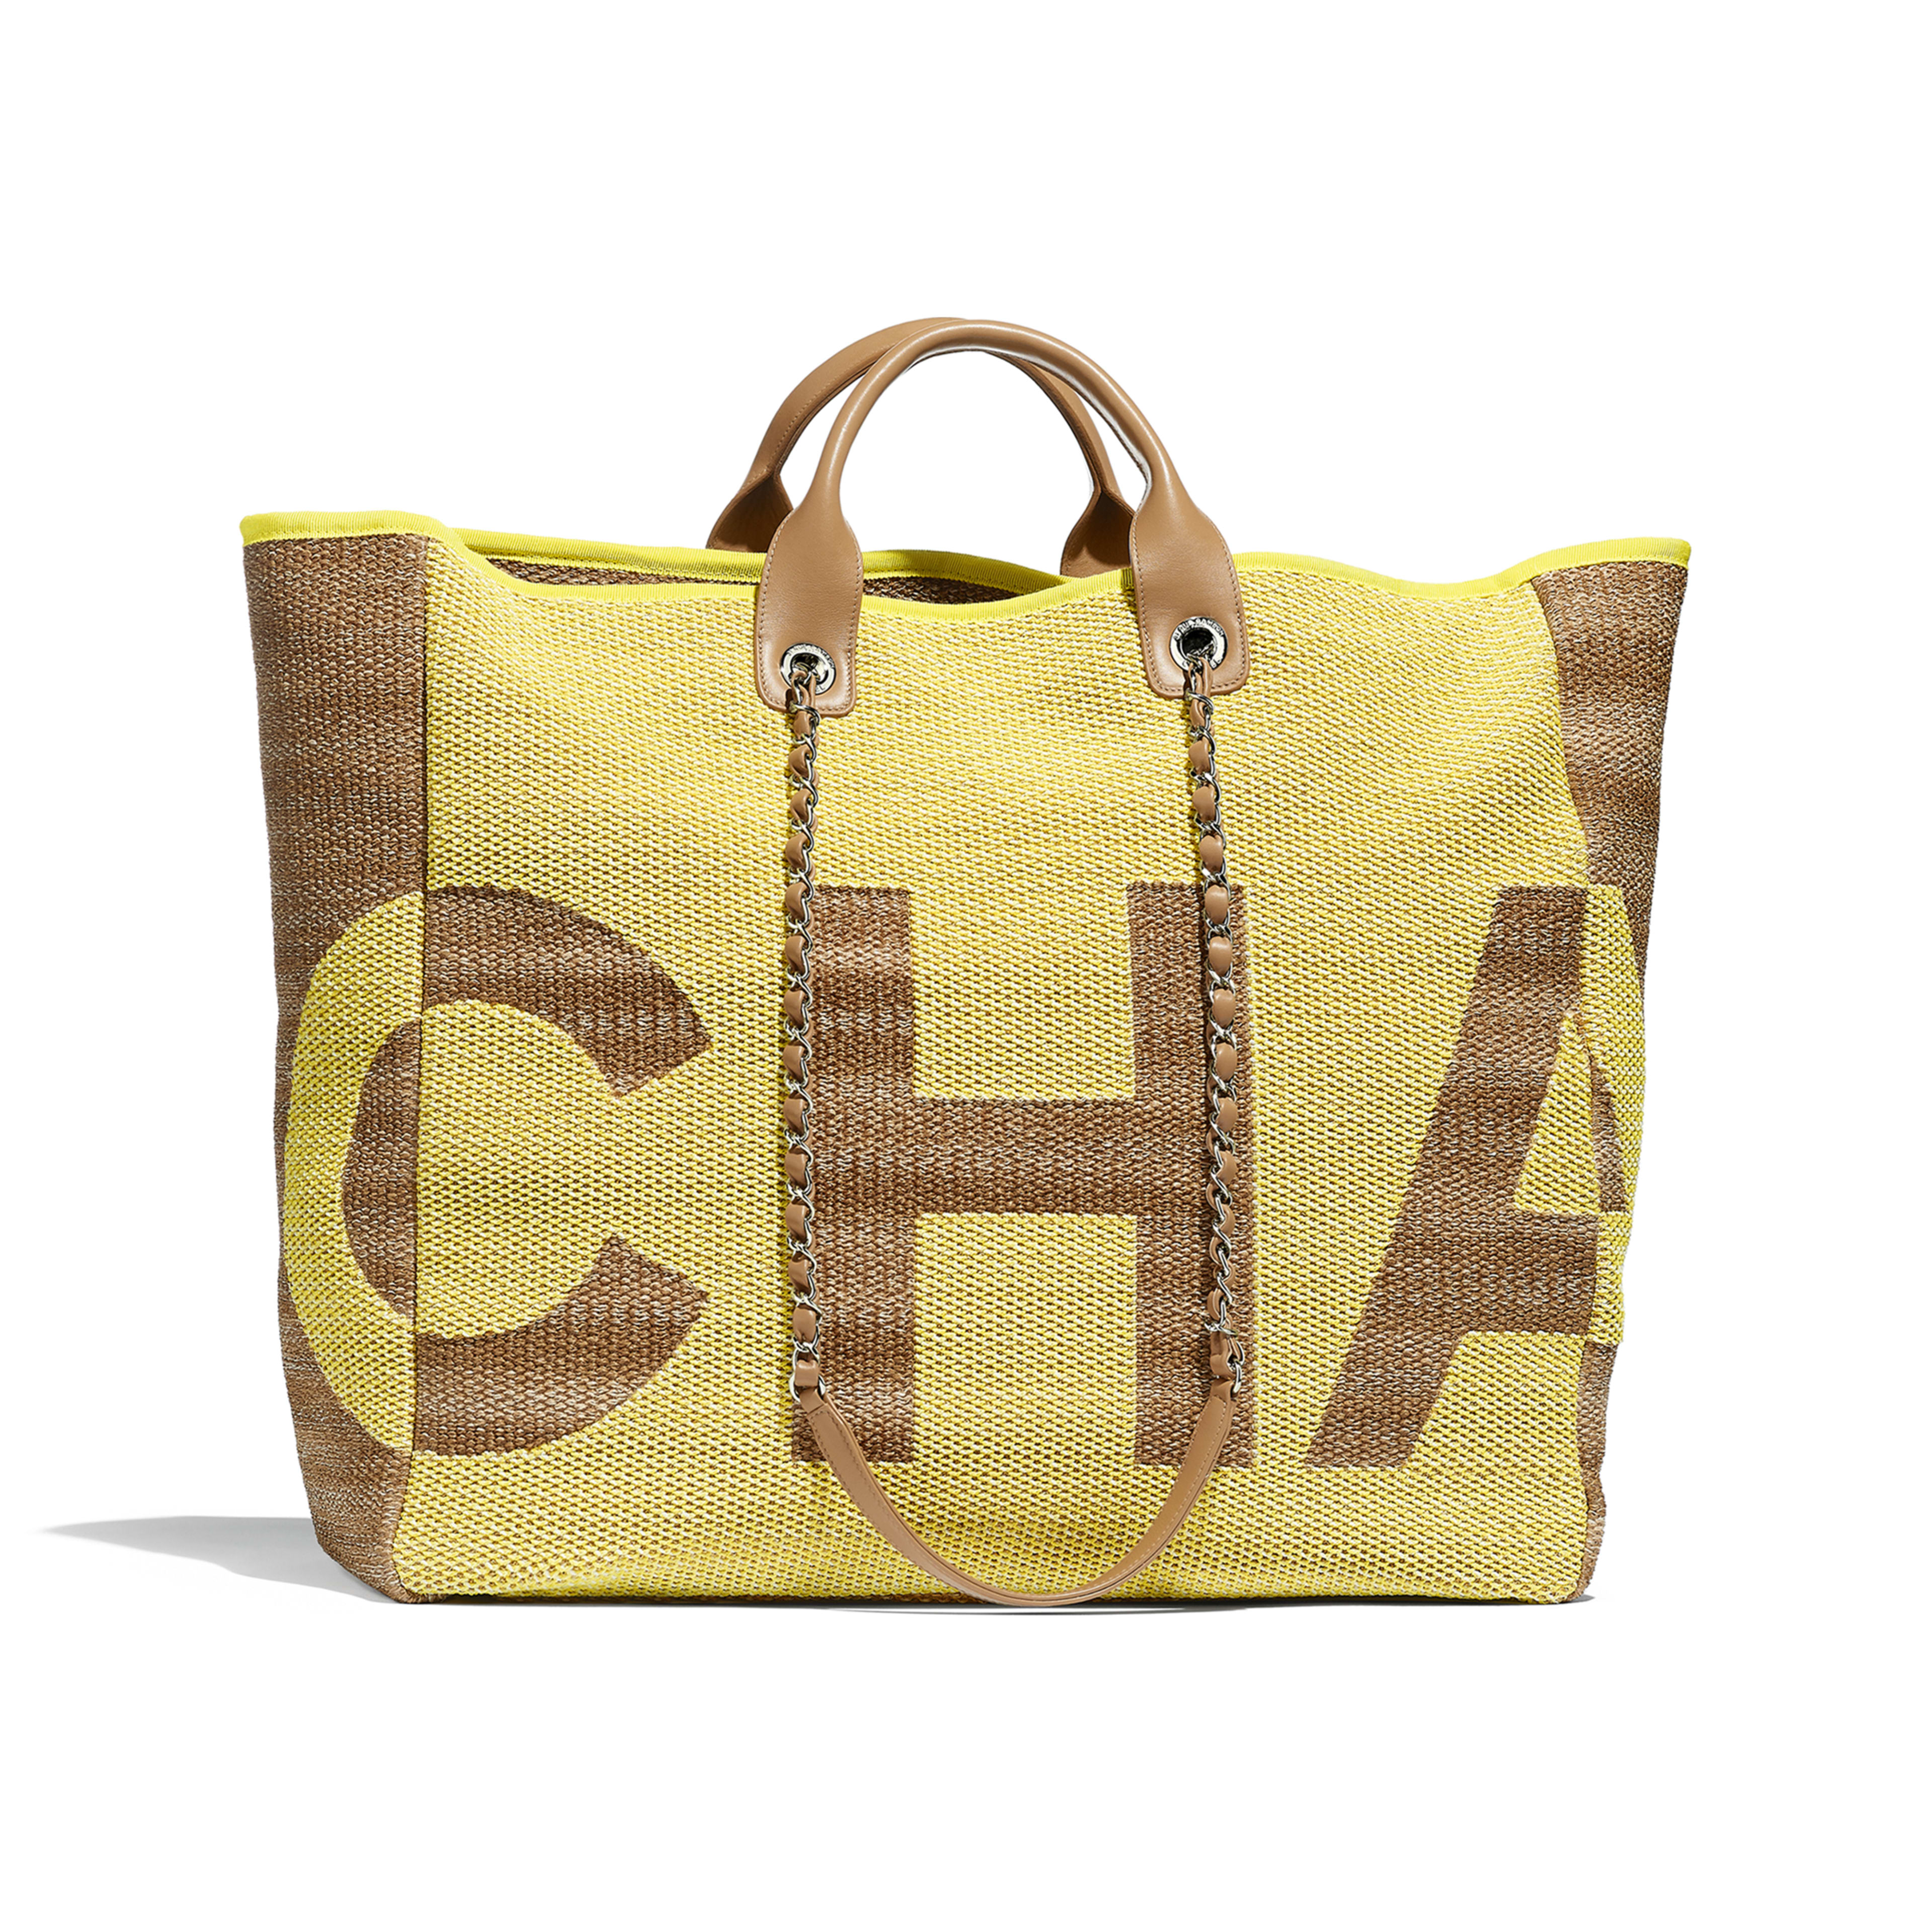 Large Shopping Bag - Yellow & Dark Beige - Mixed Fibers, Viscose, Calfskin & Silver-Tone Metal - Default view - see full sized version